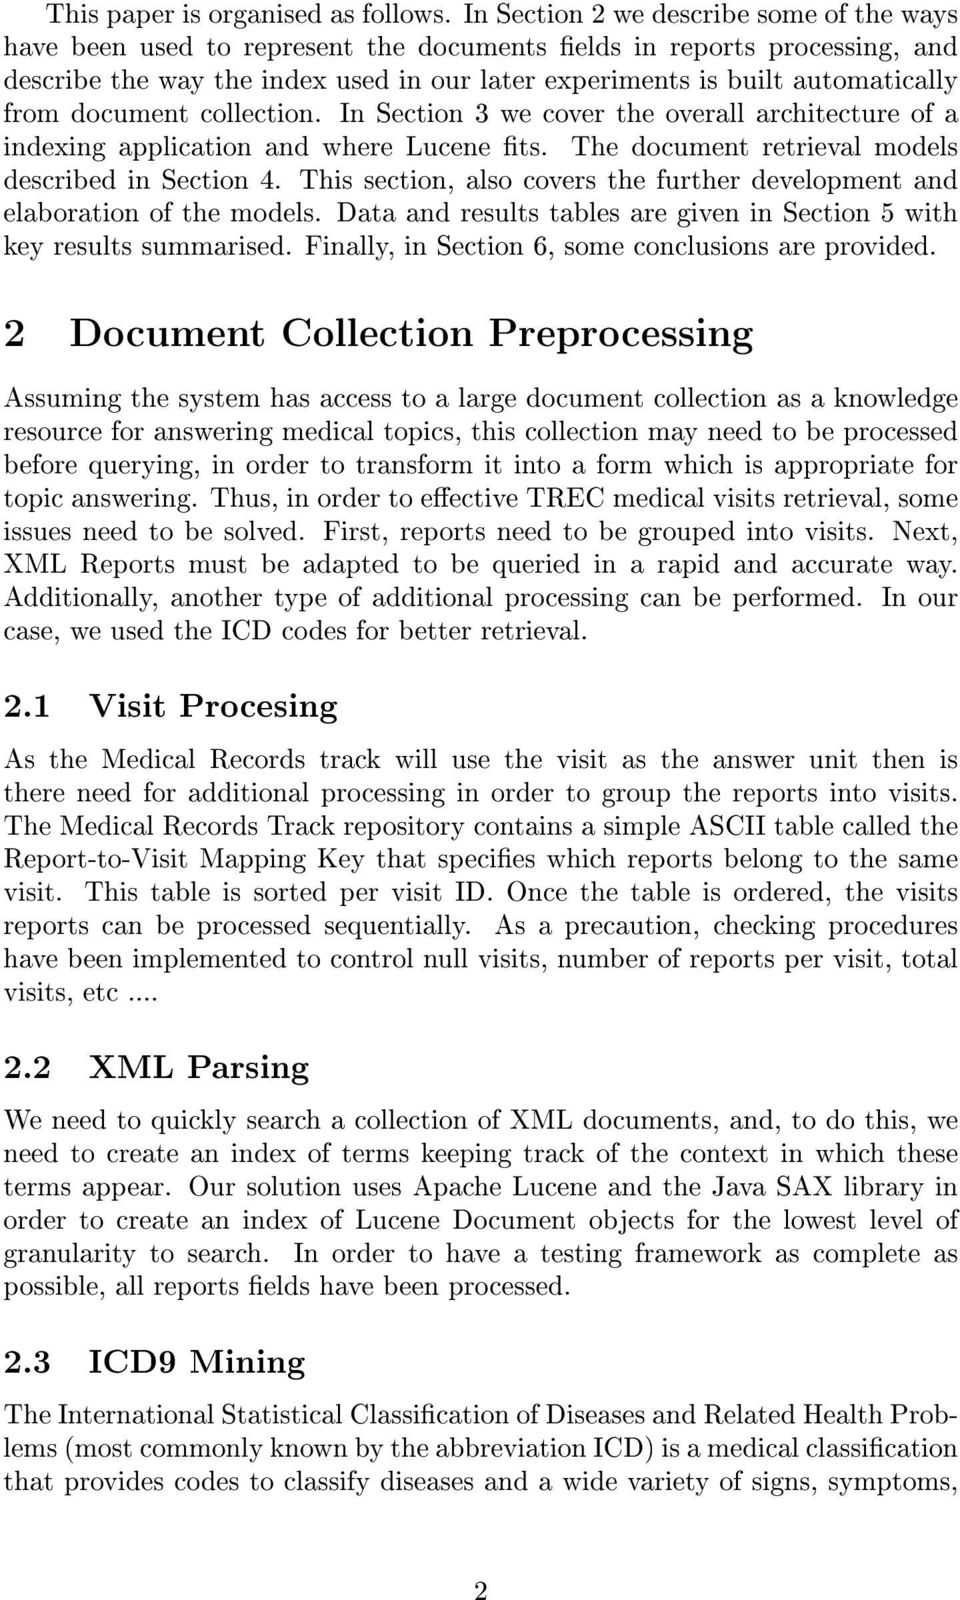 from document collection. In Section 3 we cover the overall architecture of a indexing application and where Lucene ts. The document retrieval models described in Section 4.